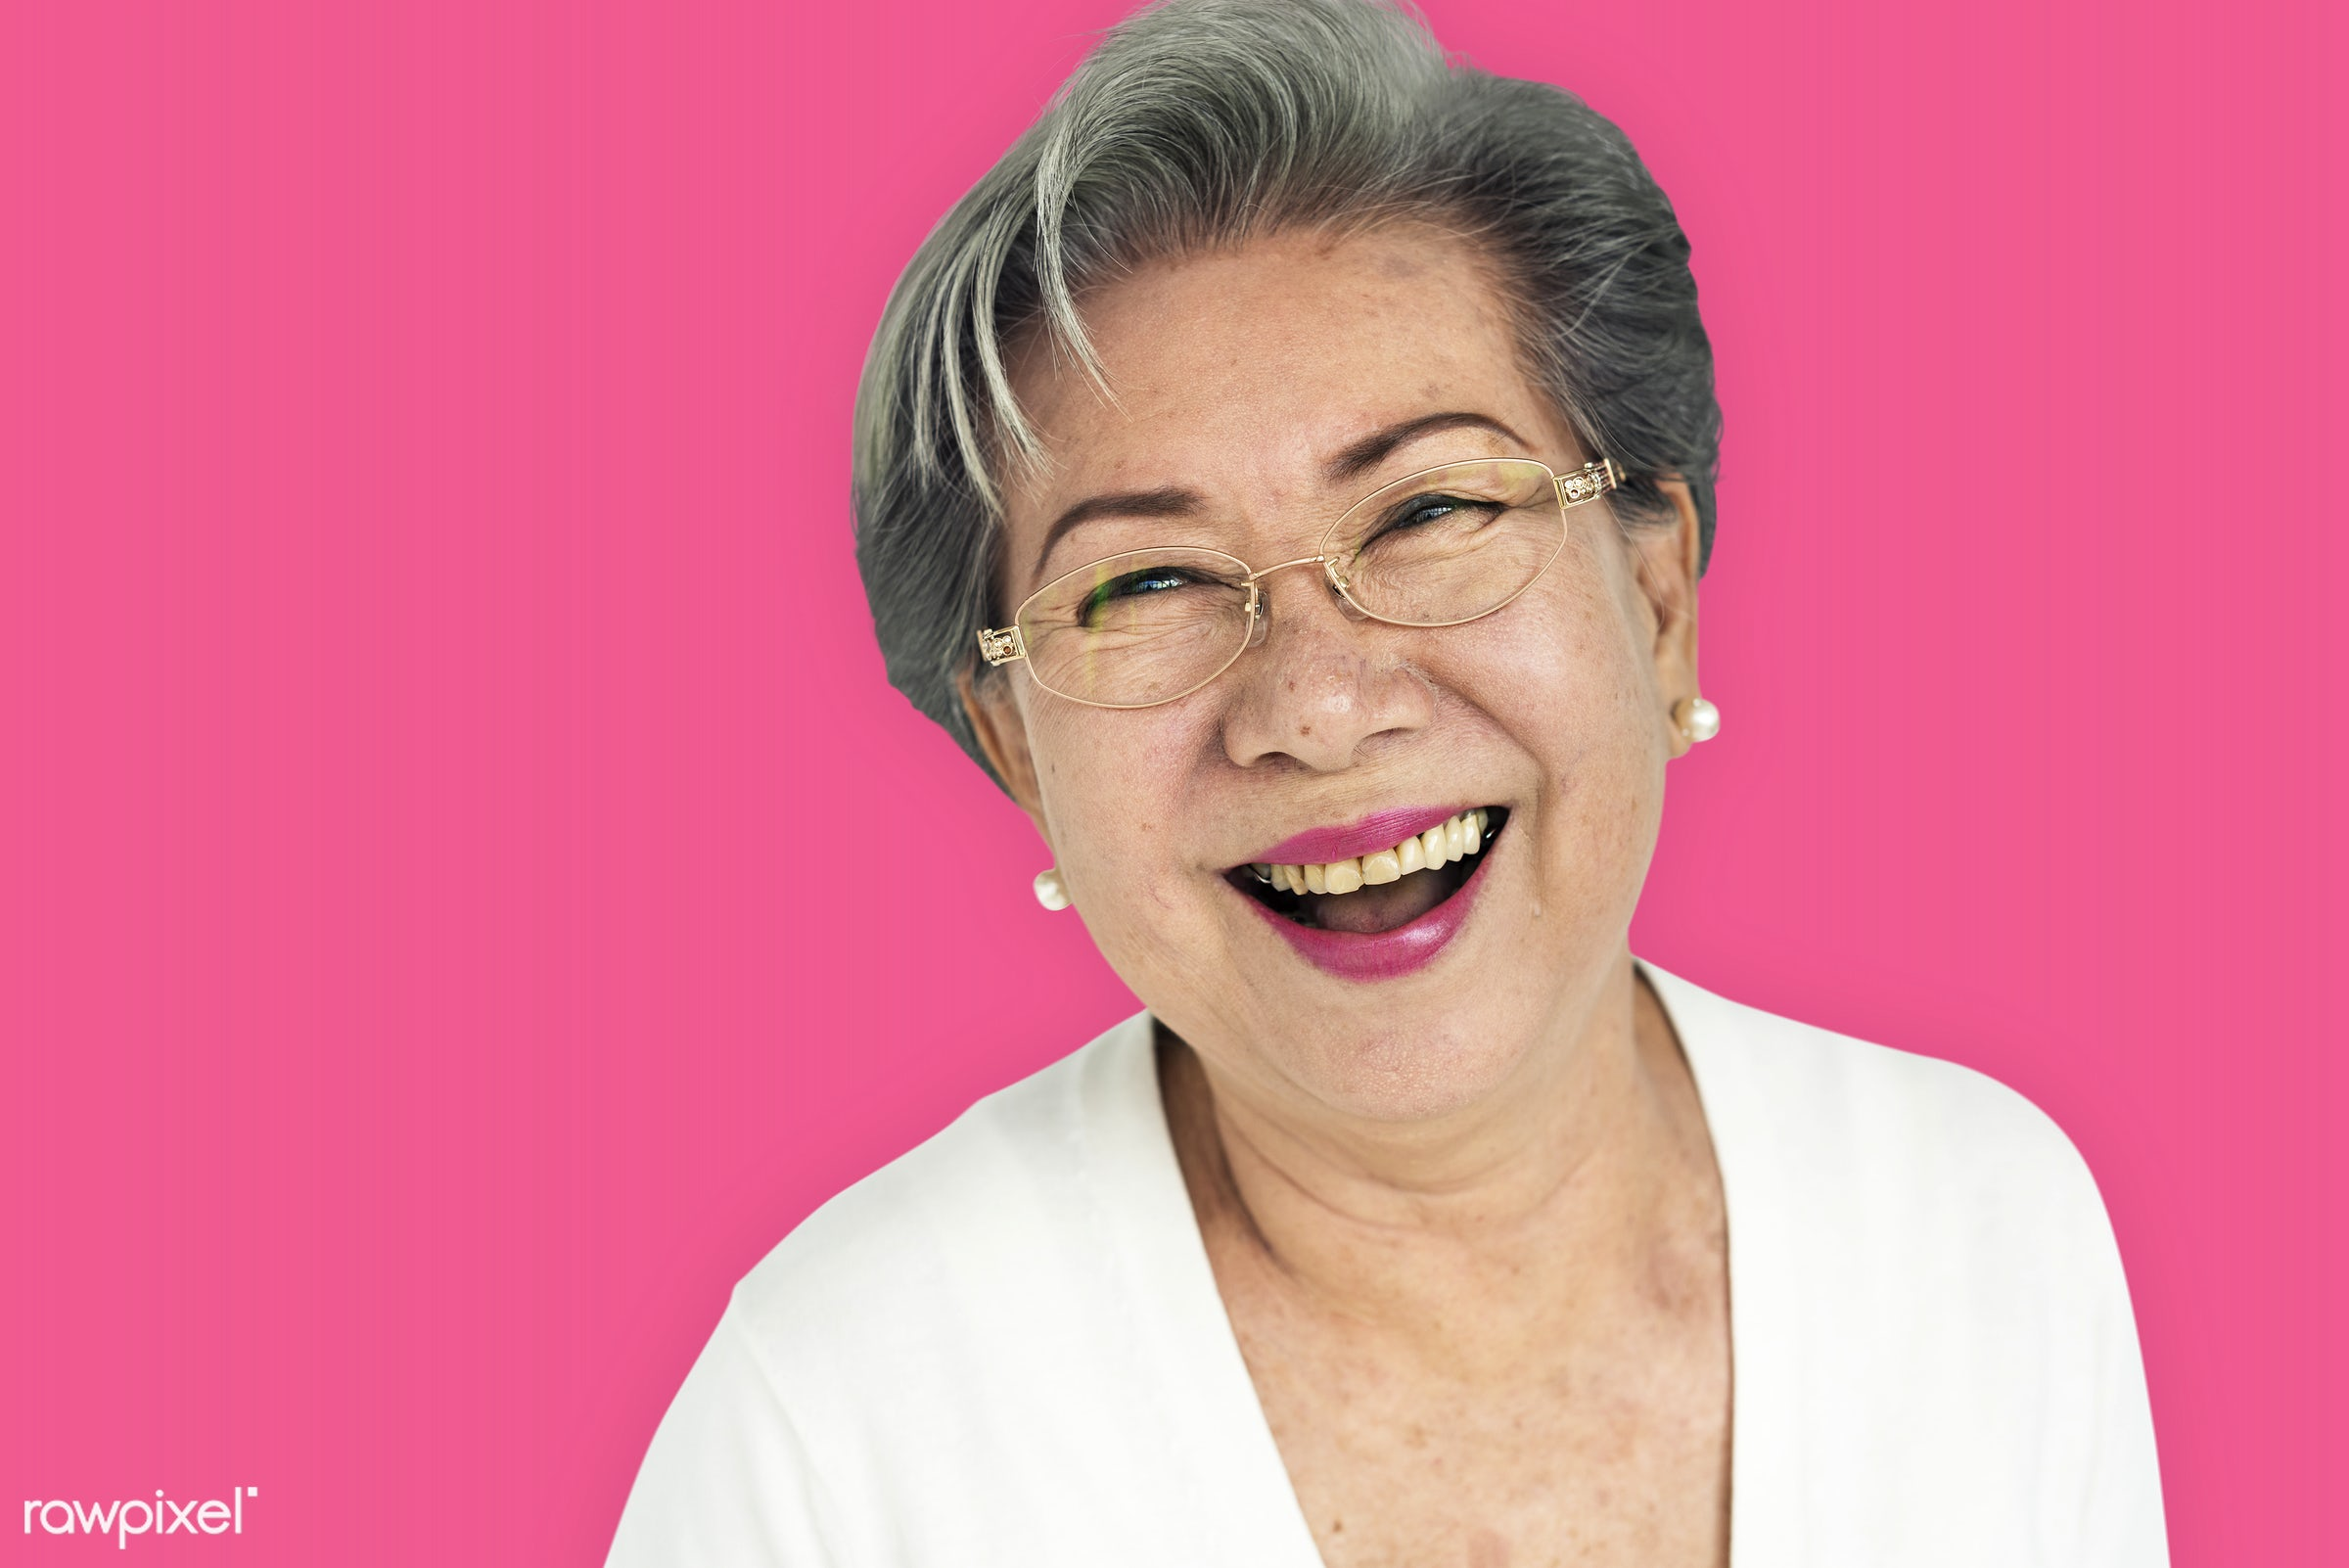 studio, expression, person, vibrant, people, asian, woman, pink, cheerful, smiling, isolated, happiness, portrait, emotion,...